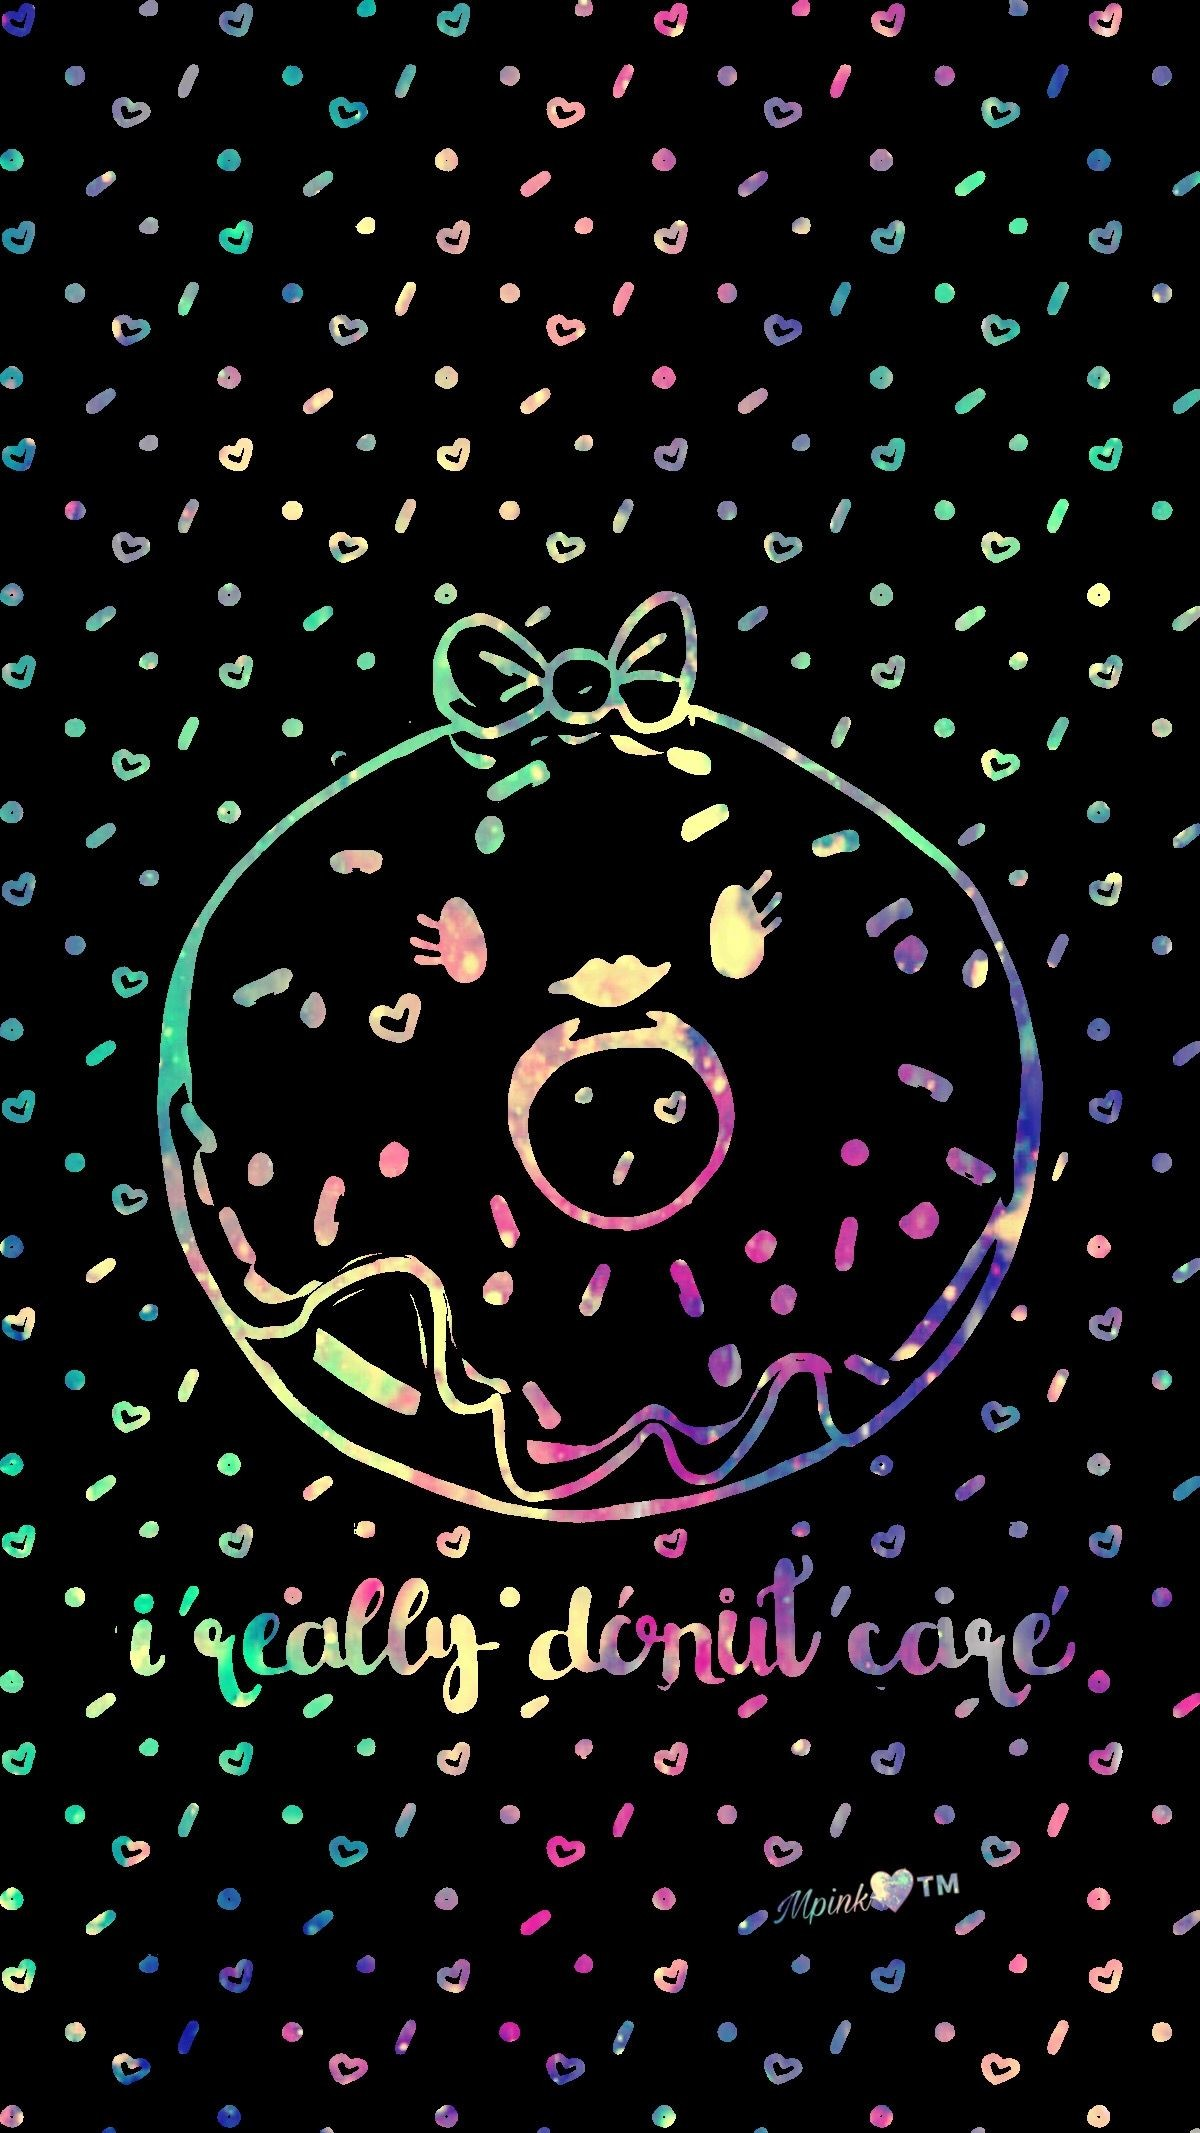 1200x2133 I Really Donut Care Galaxy Wallpaper #androidwallpaper #iphonewallpaper # wallpaper #galaxy #sparkle #glitter #lockscreen #pretty #kawaii #cute  #girly #neon ...